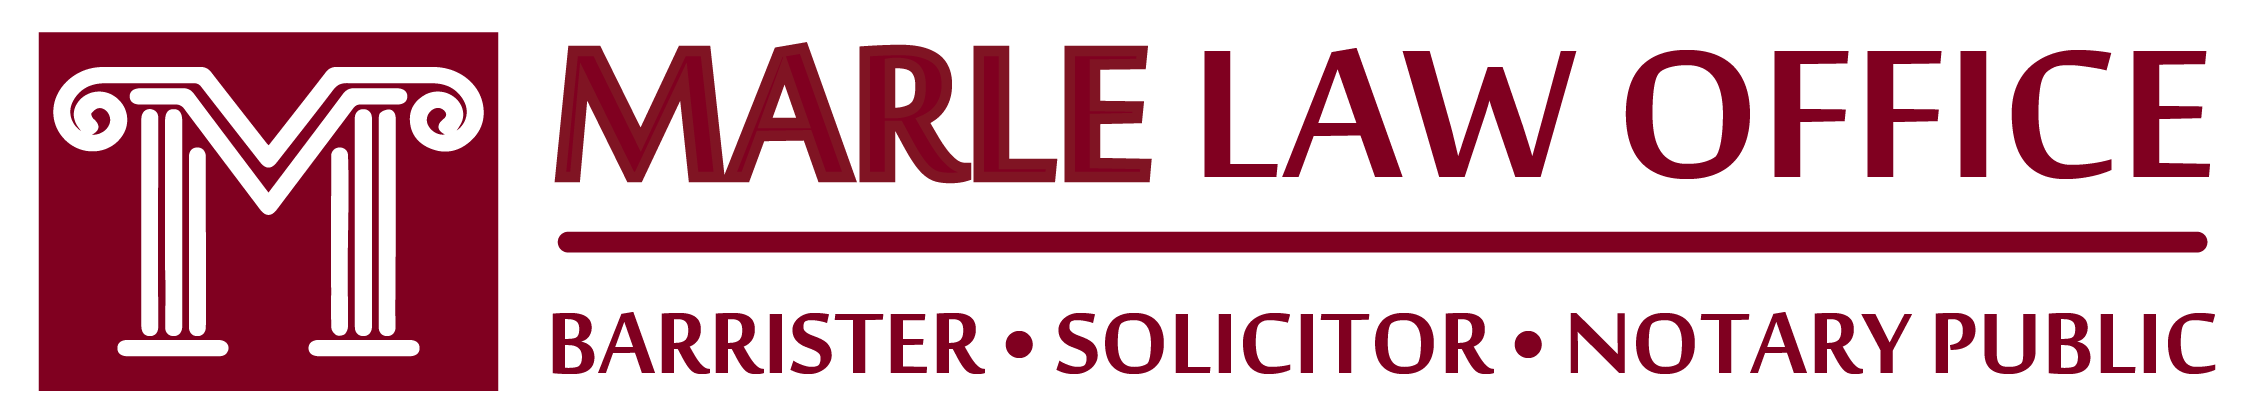 Marle Law Office